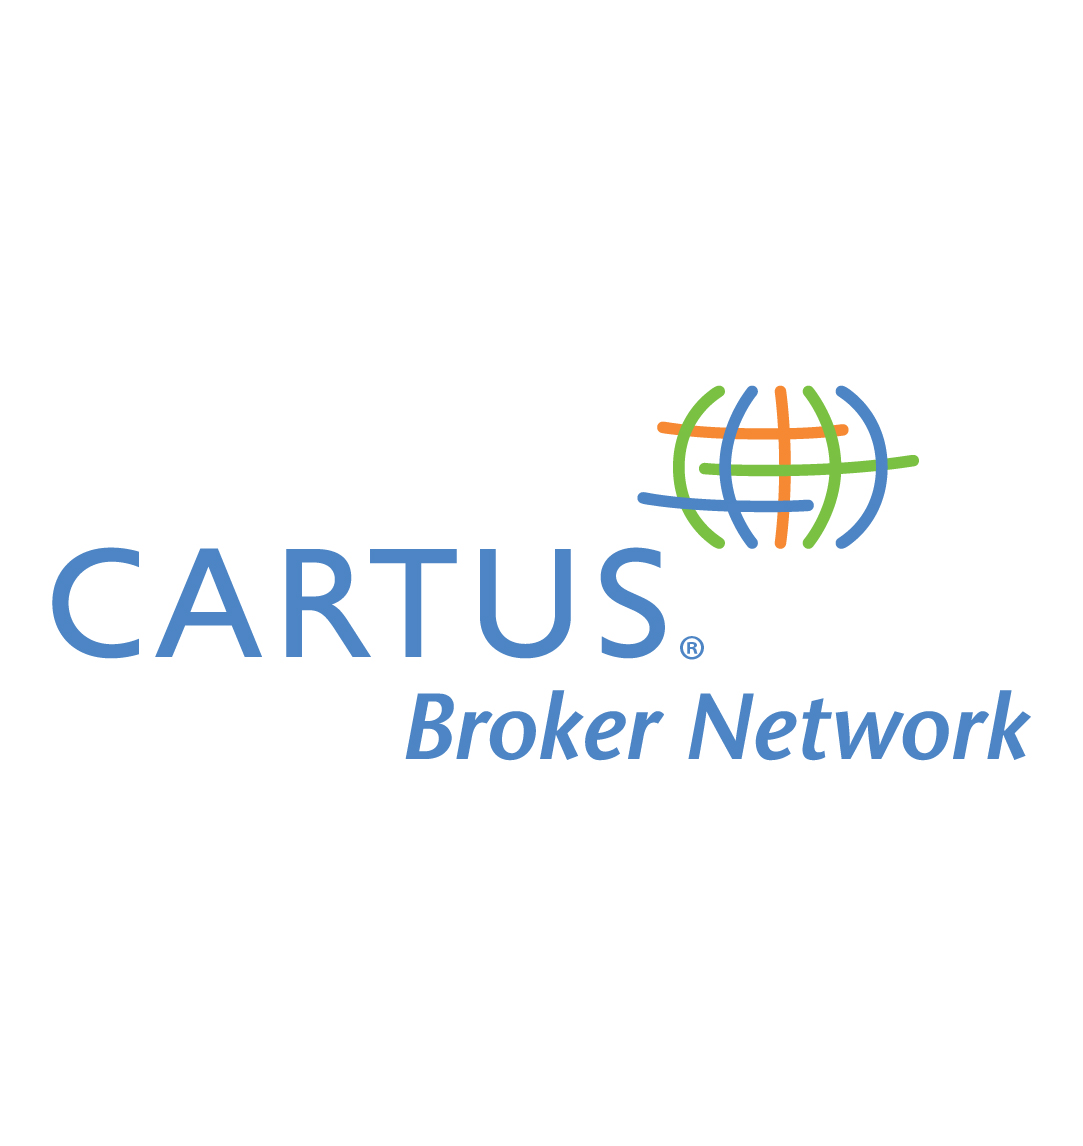 Cartus-Broker-Network-Logo.jpg